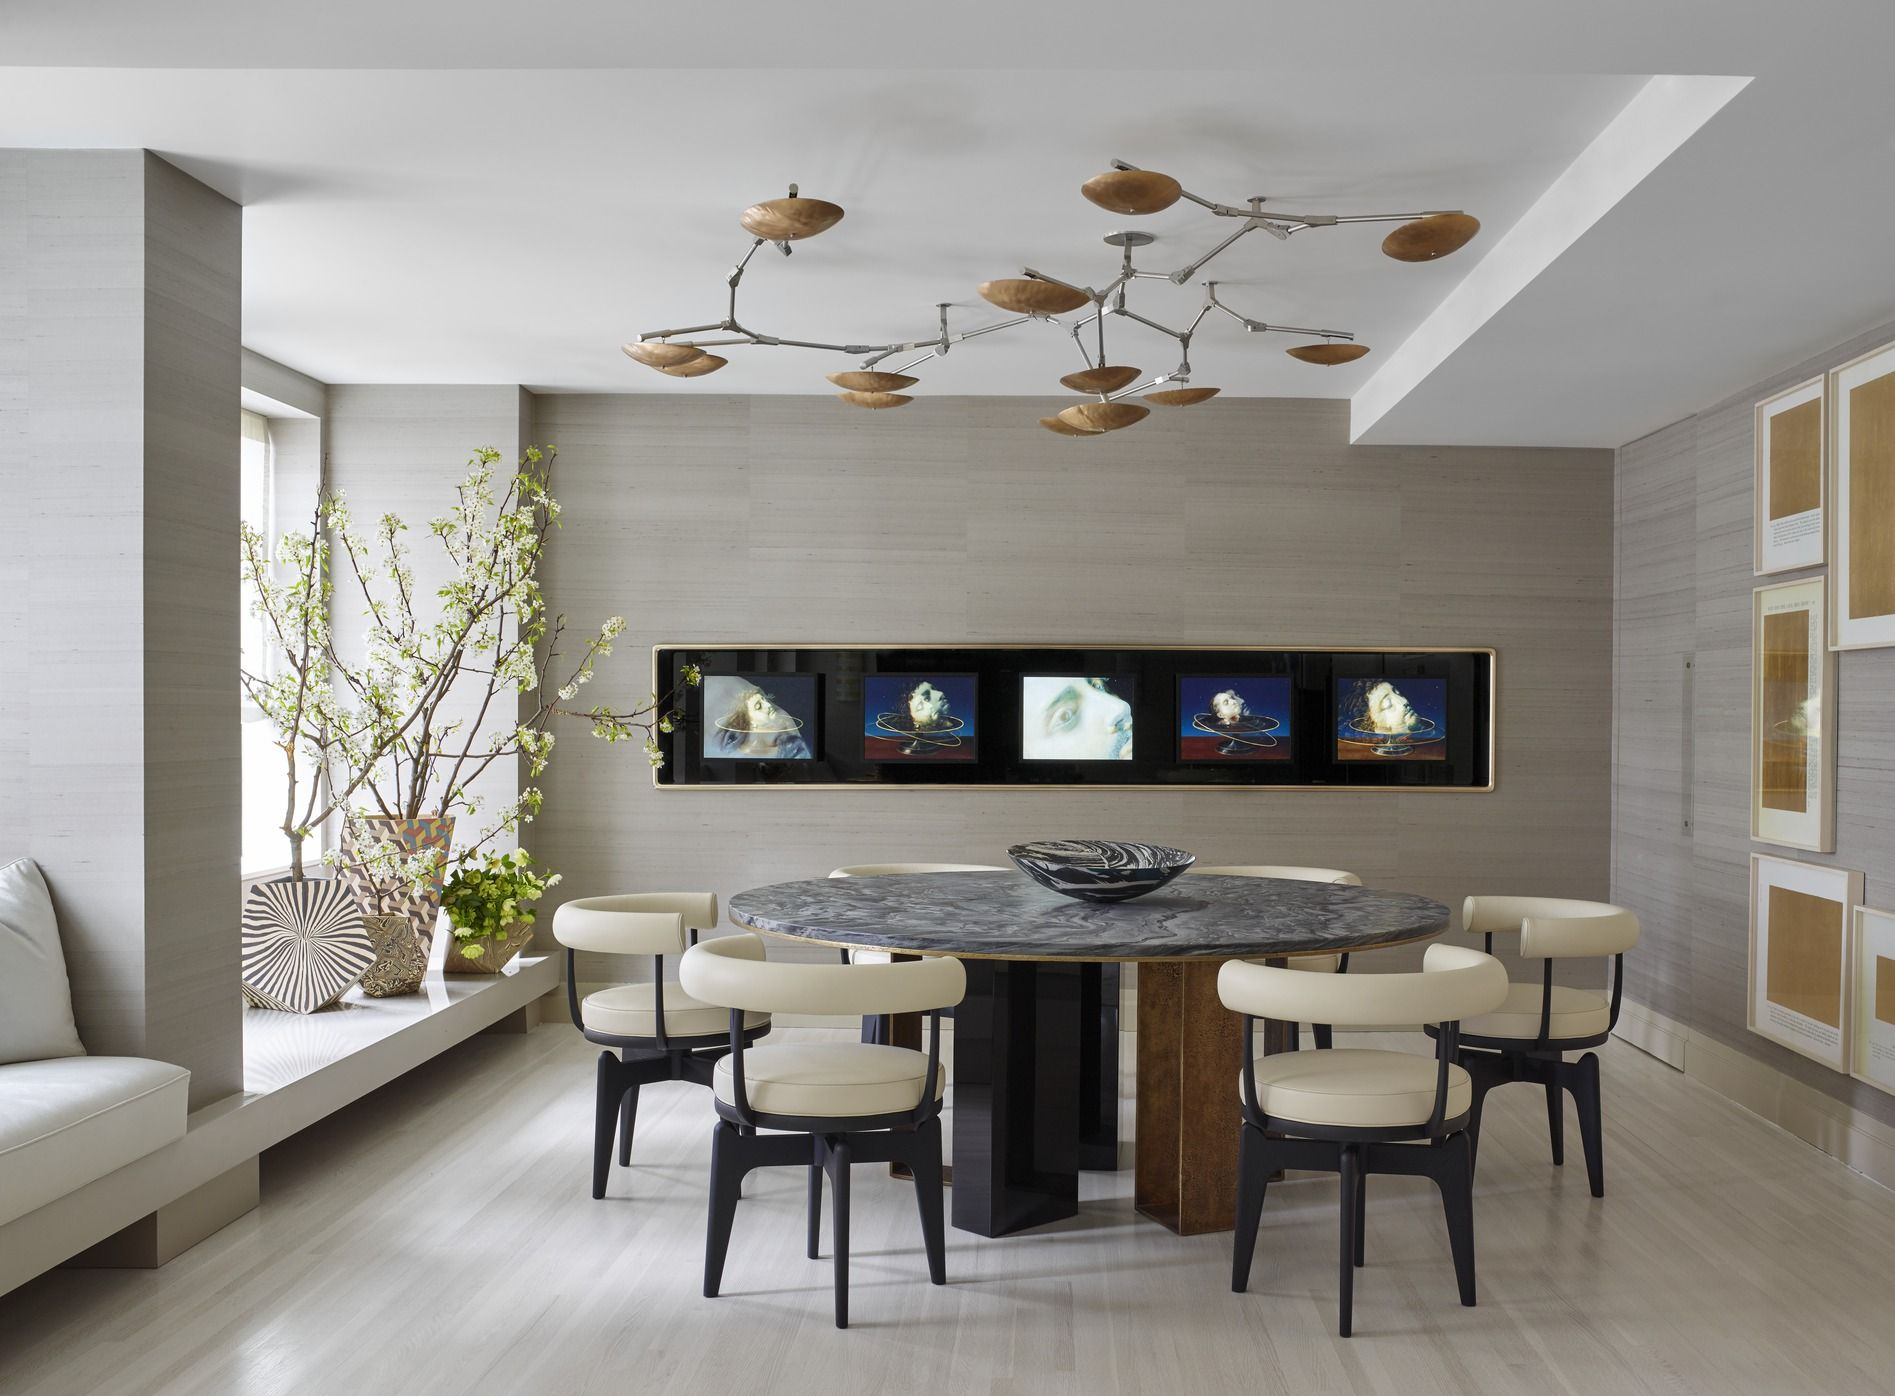 Dinning Room Ideas Unique 25 Modern Dining Room Decorating Ideas  Contemporary Dining Room Inspiration